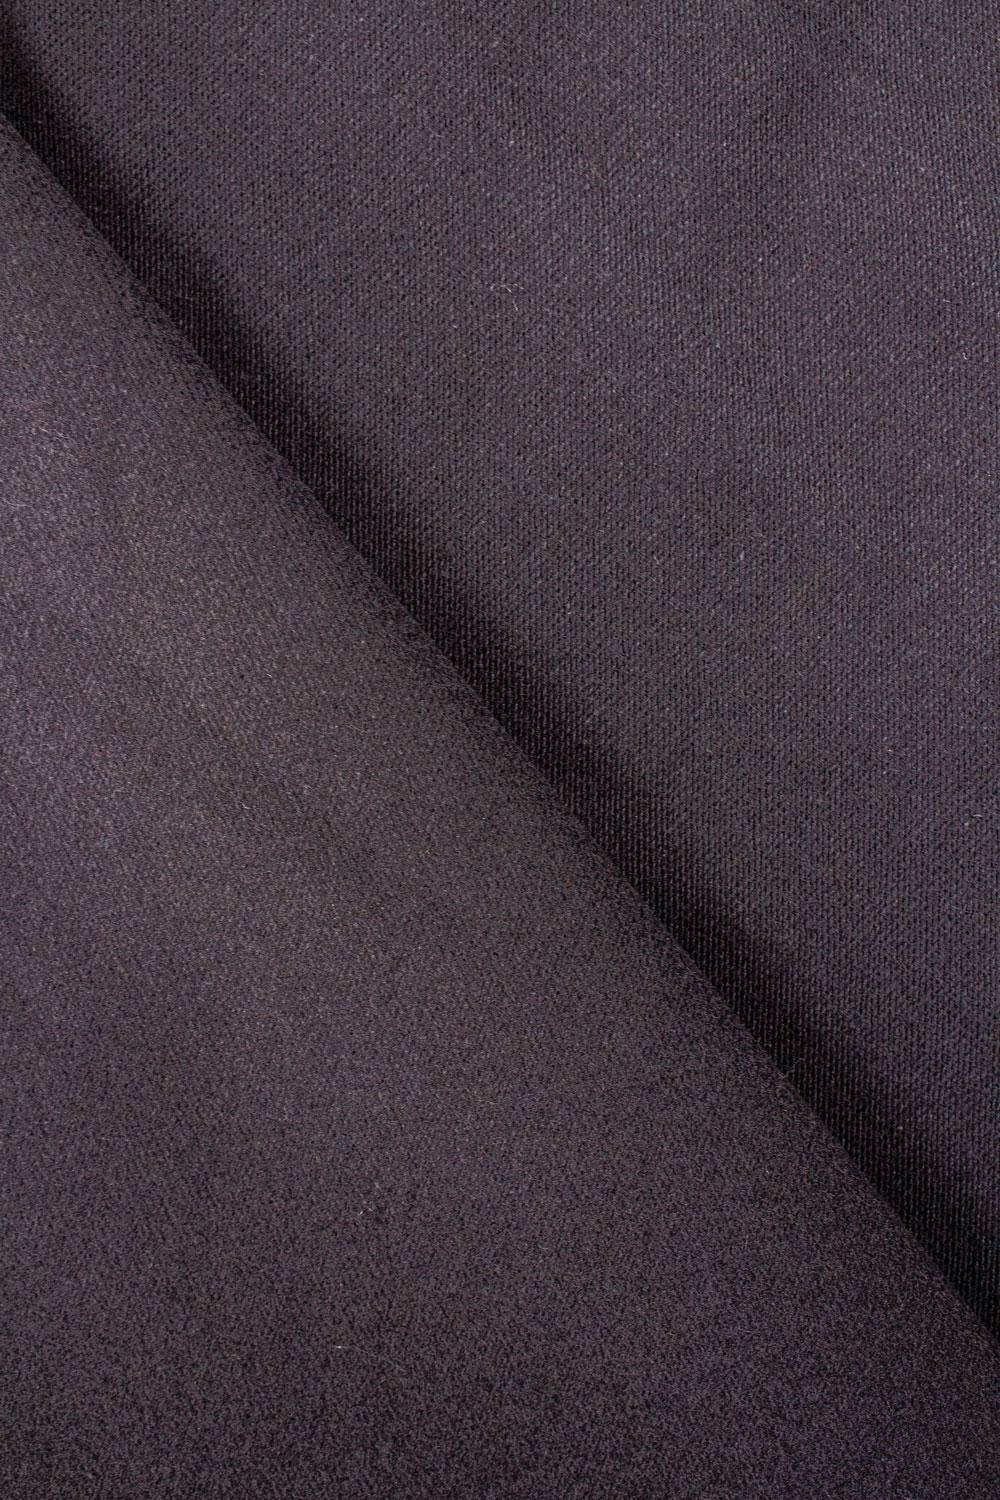 Fabric - Flannel - Graphite - 160 cm - 425 g/m2